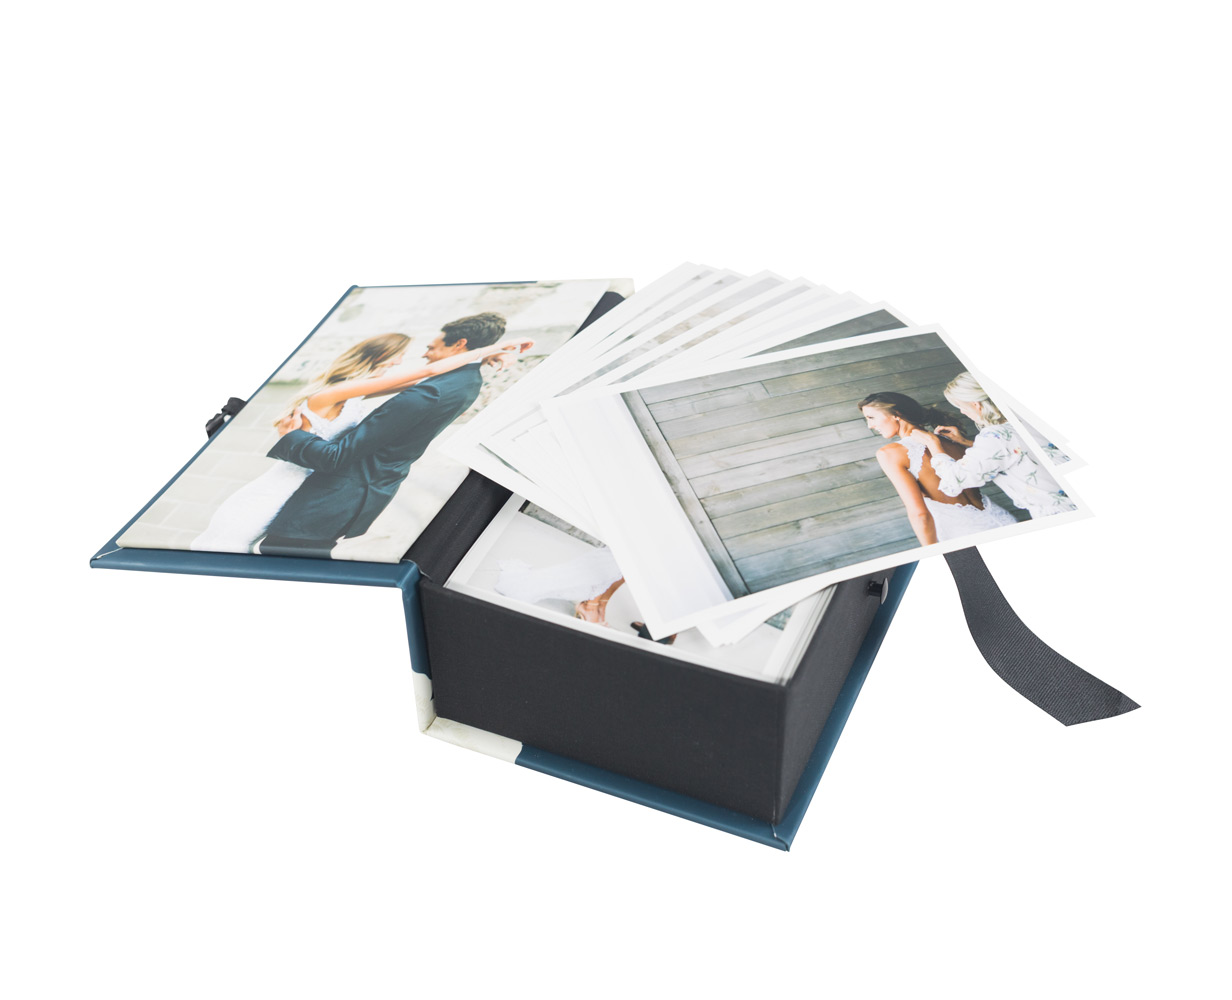 Custom photo boxes start at $225 and hold between 100 to 400 premium lustre or deep matte prints. Sizes range from 4x6, 5x7, 6x6, 8x8 & 10x10 inches.